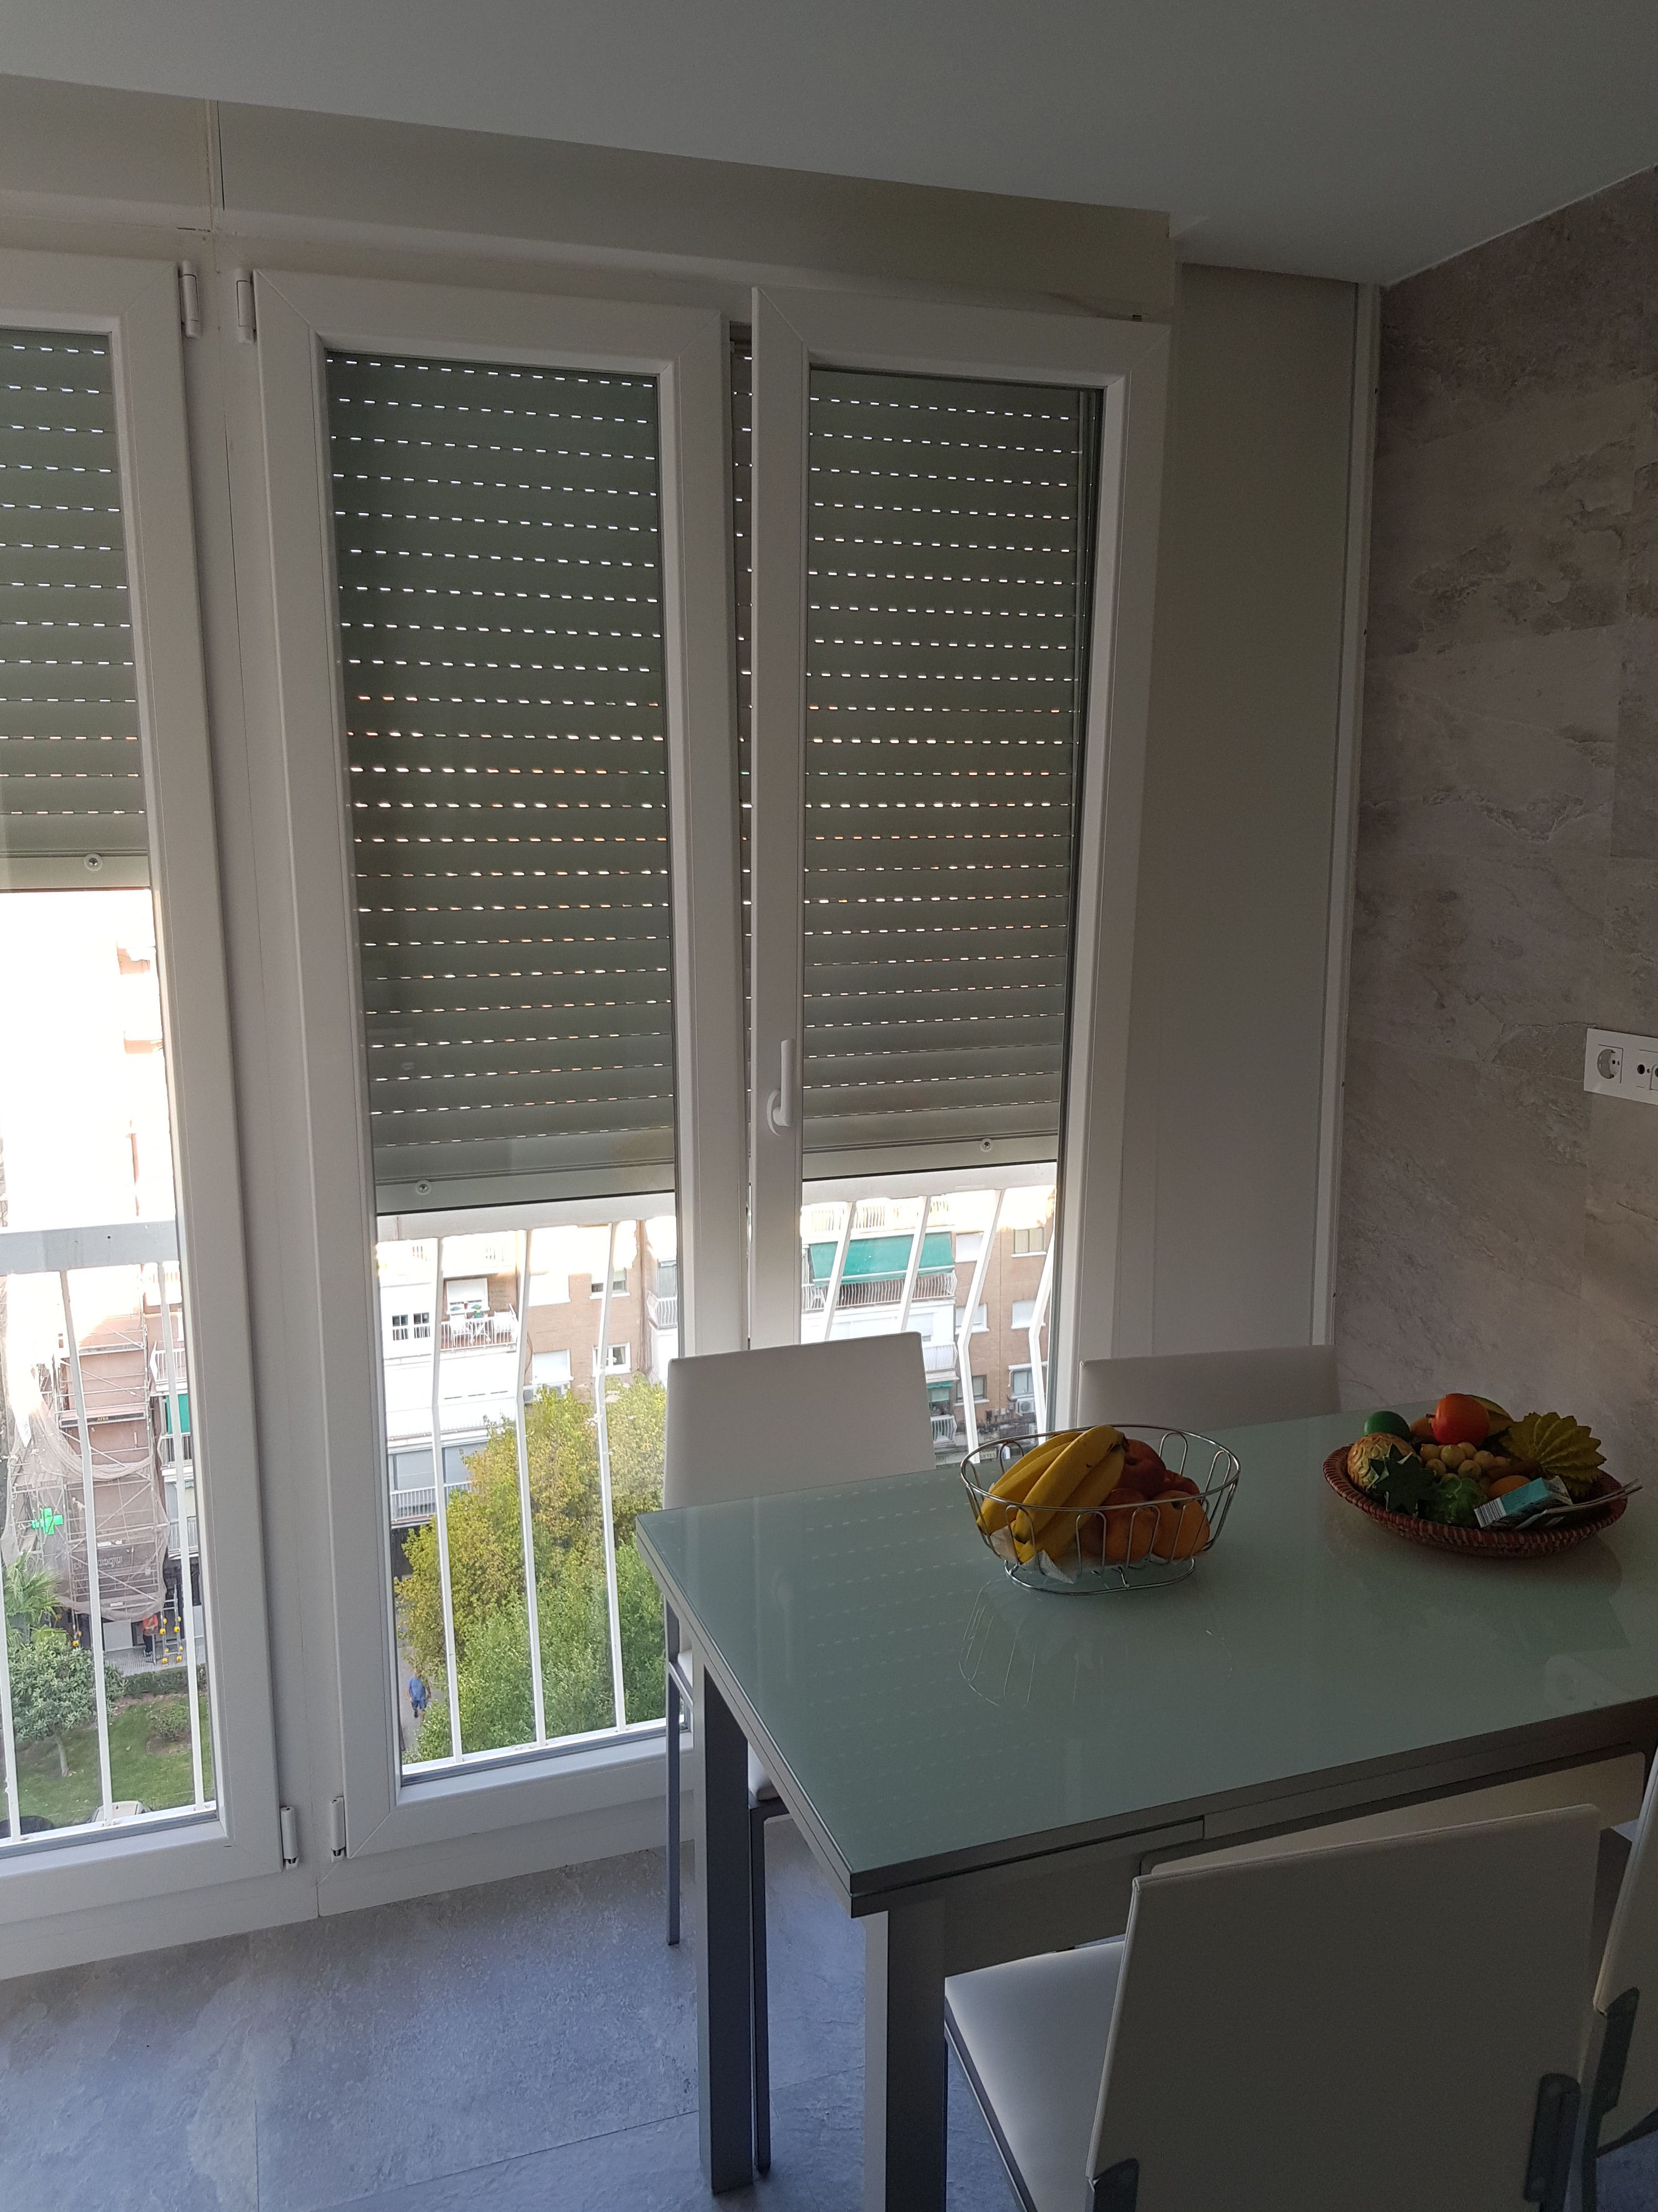 Ventanas Pvc Kommerling Opiniones Kommerling Madrid Awesome Kommerling Madrid With